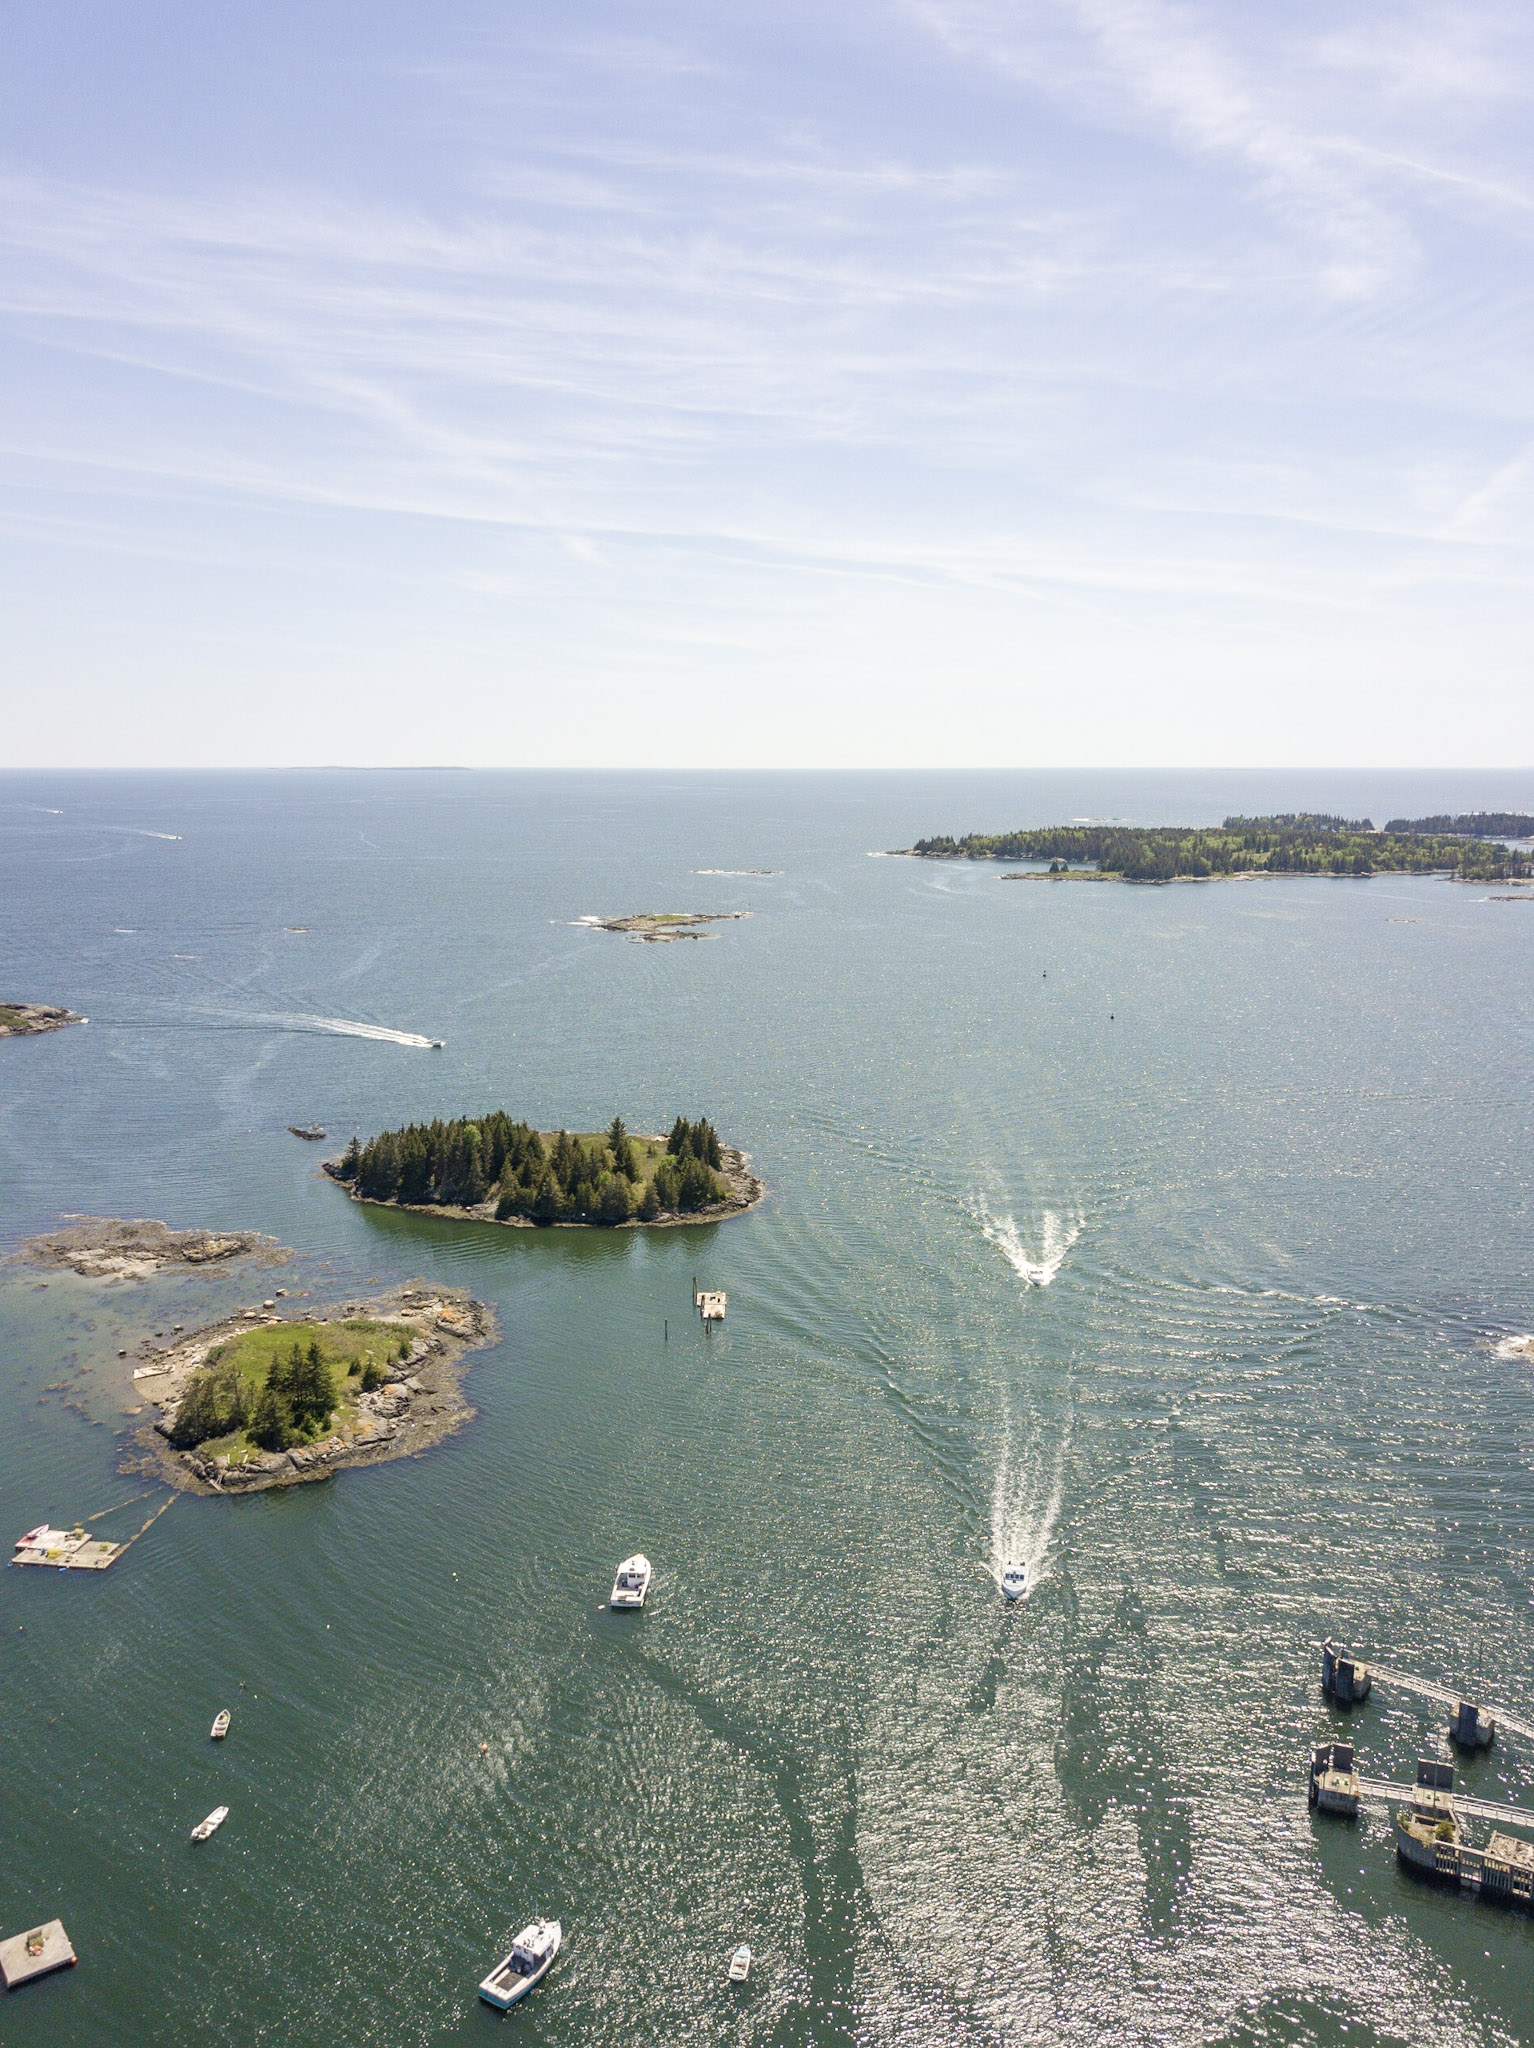 Partnership with The Maine Office of Tourism @VisitMaine